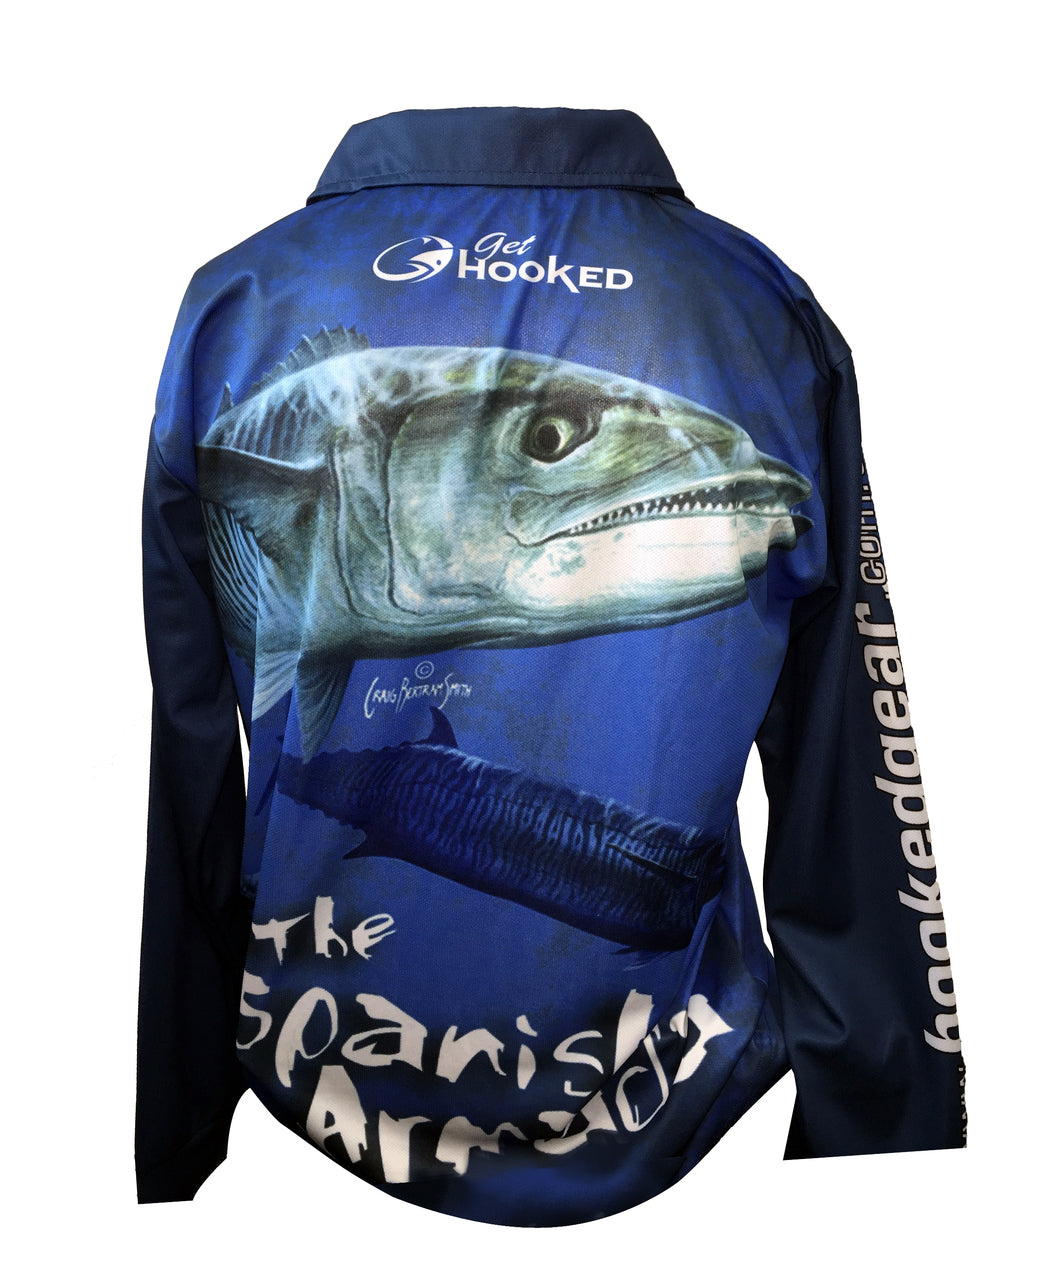 Long Sleeve Fishing Polo Tournament Shirt - Spanish Mackerel